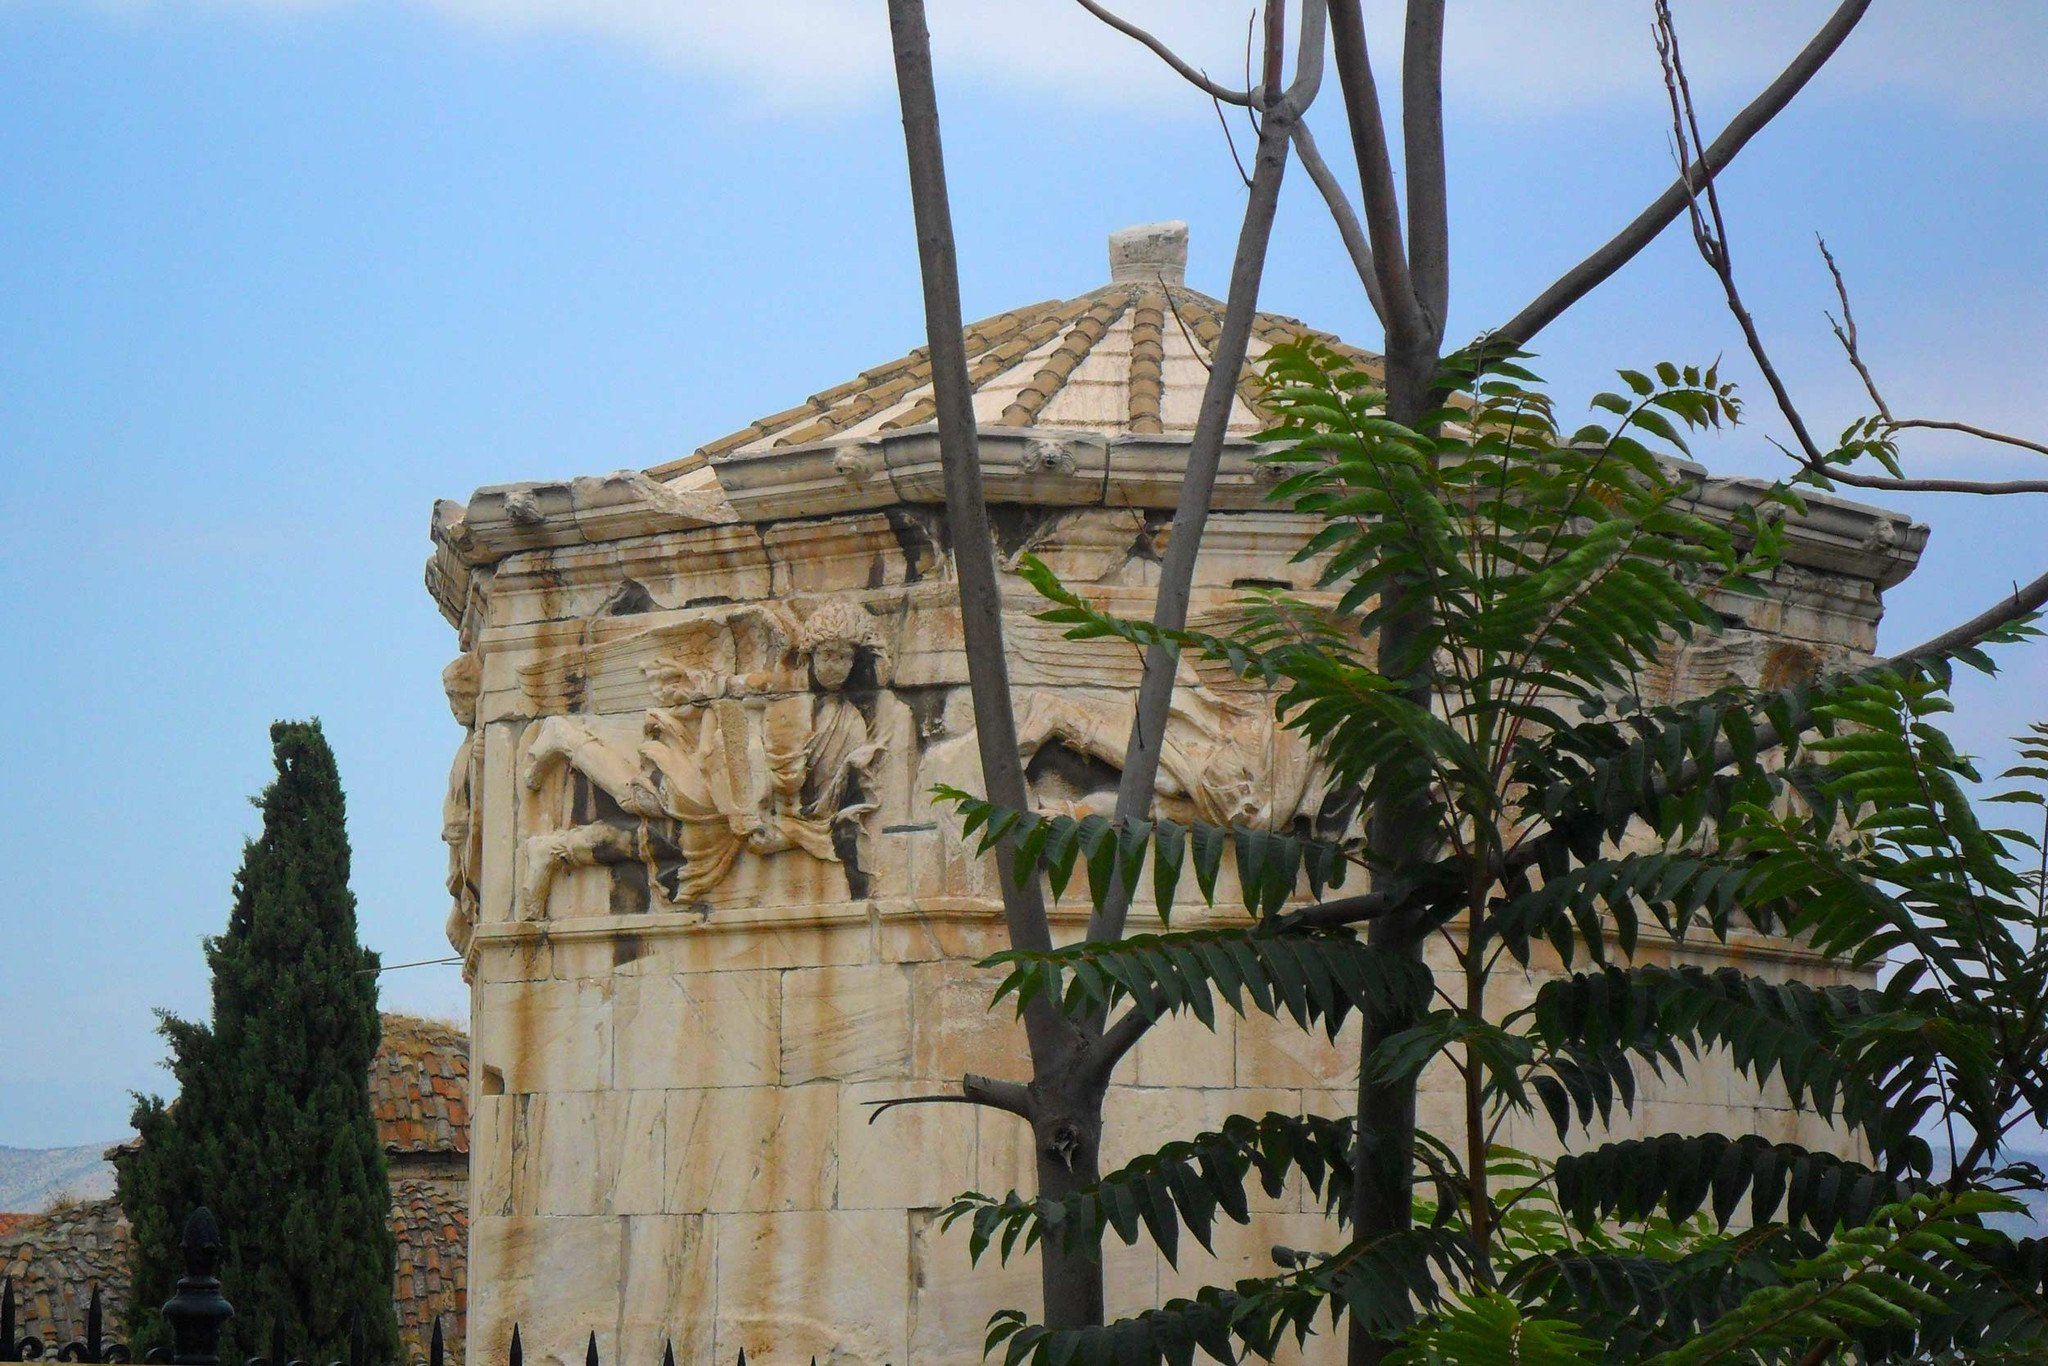 Ancient architecture in Athens, Greece